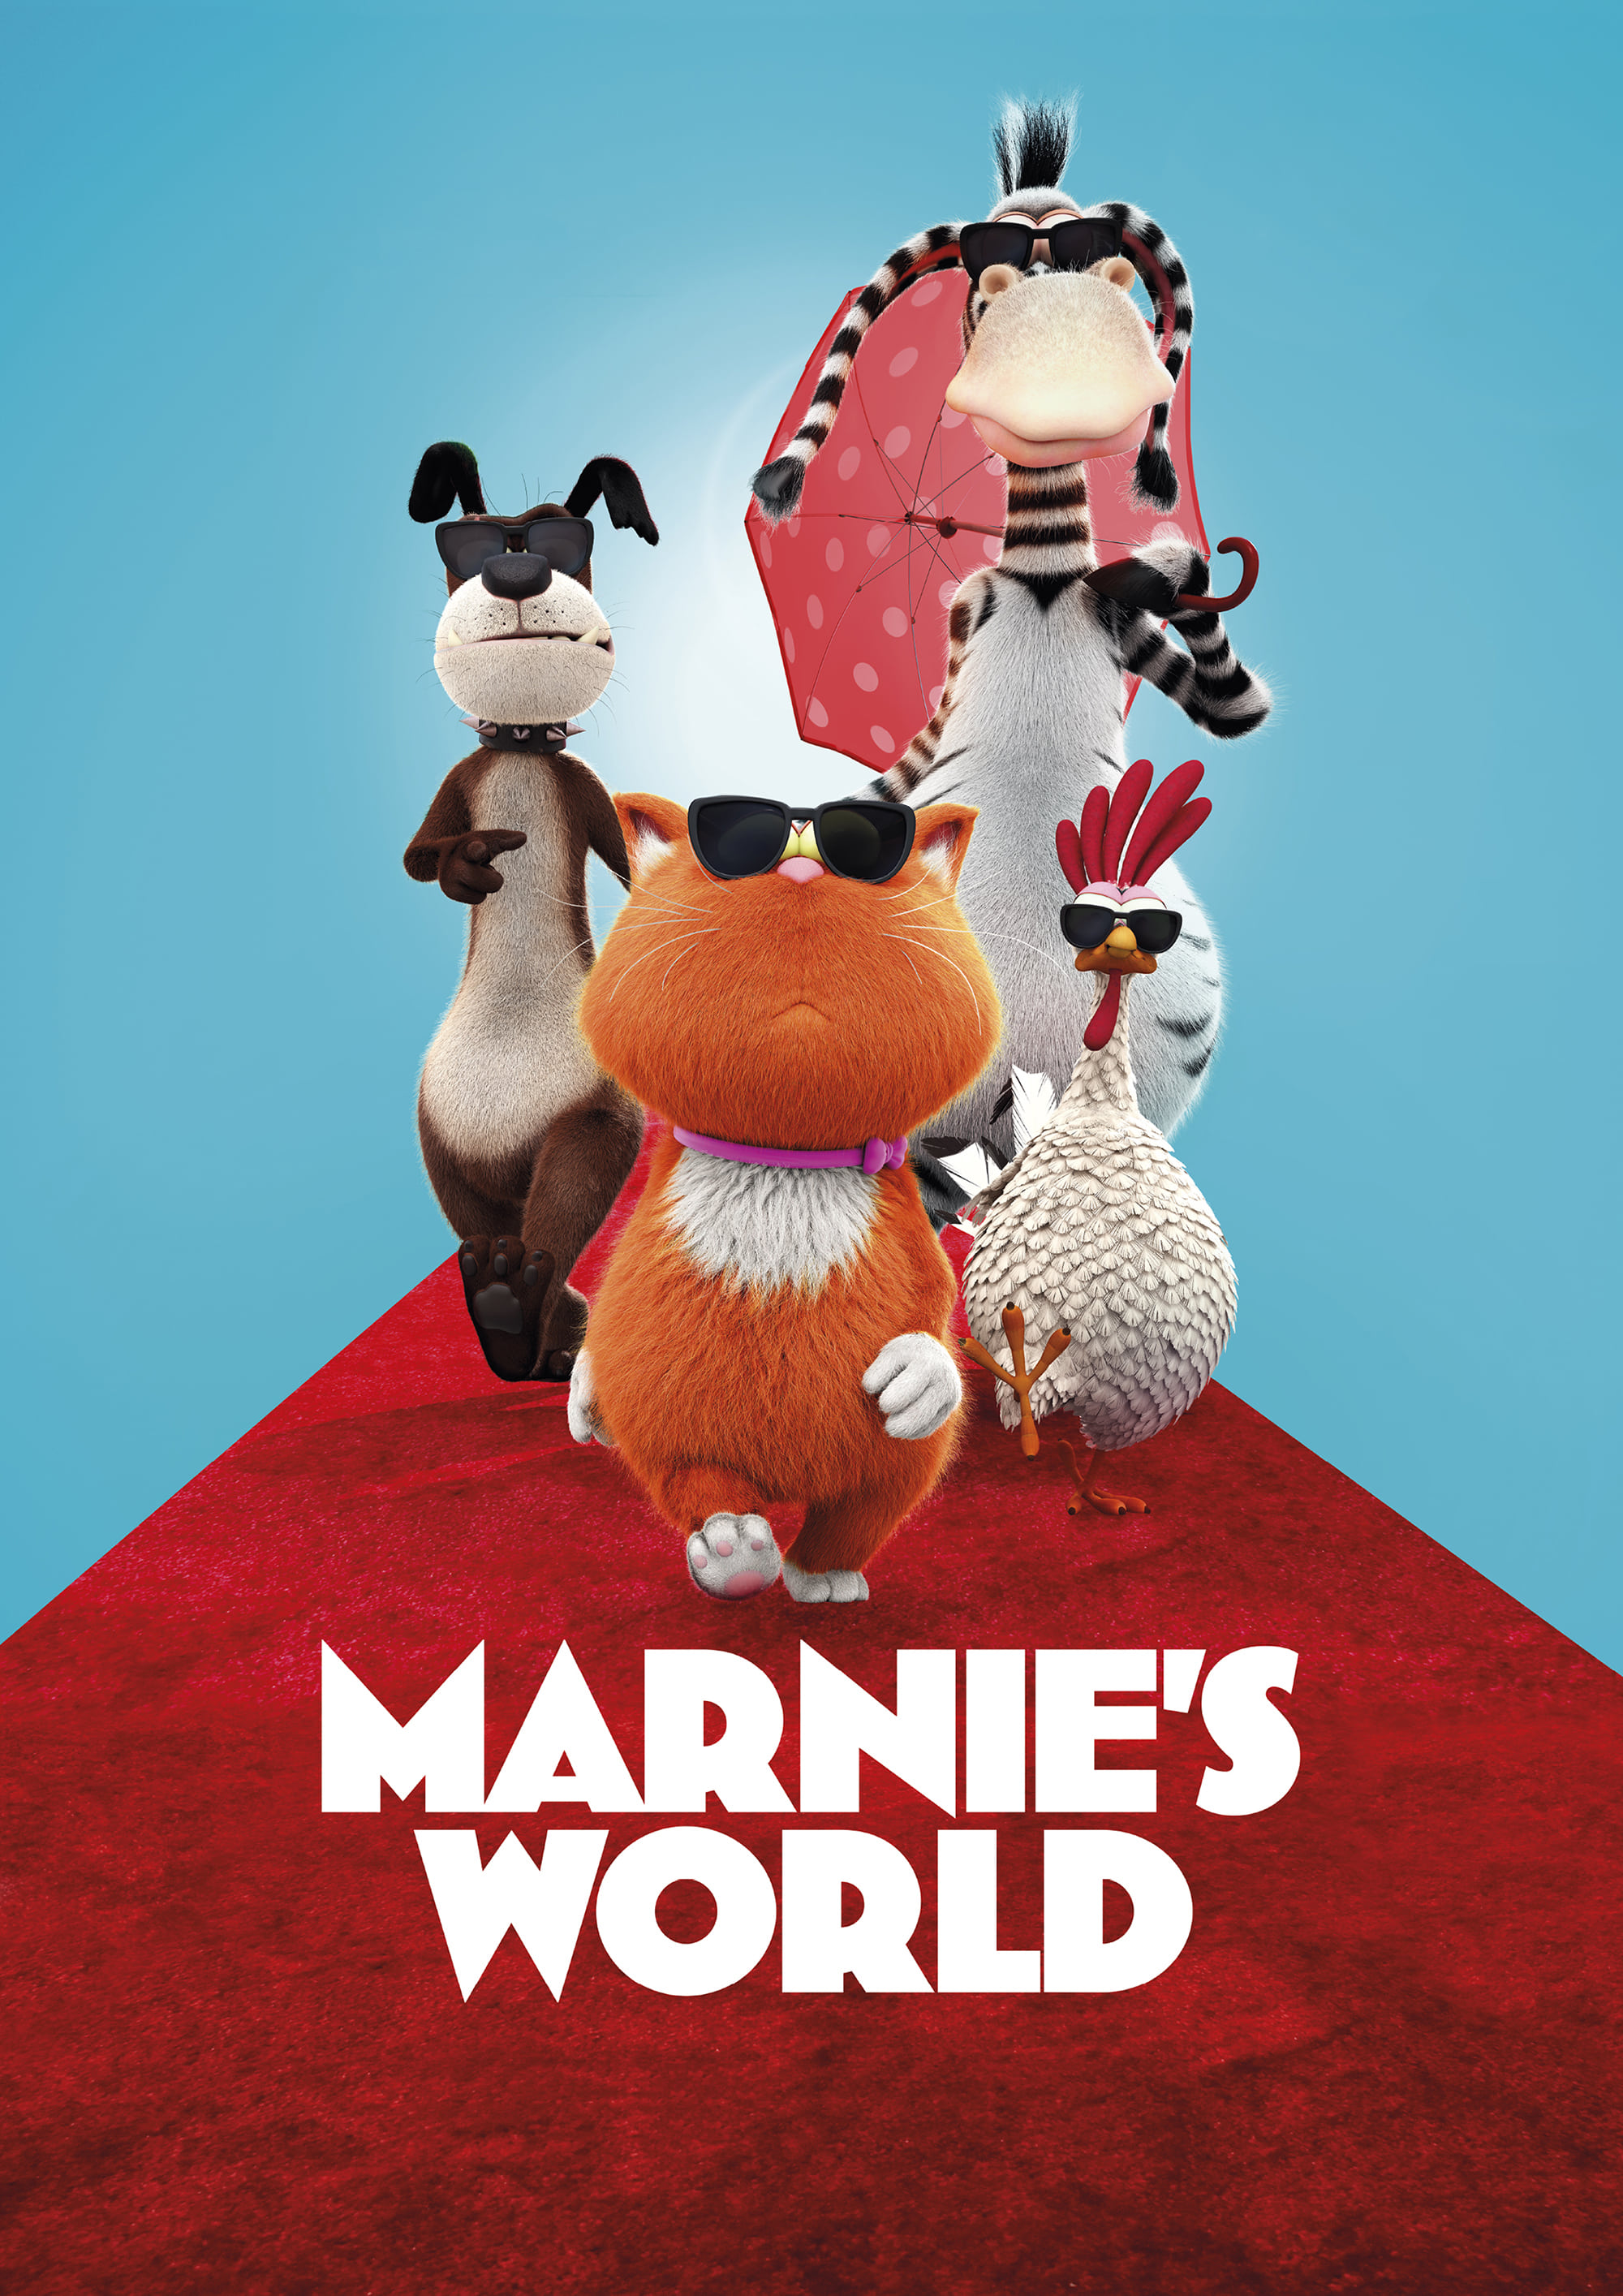 Marnie's World